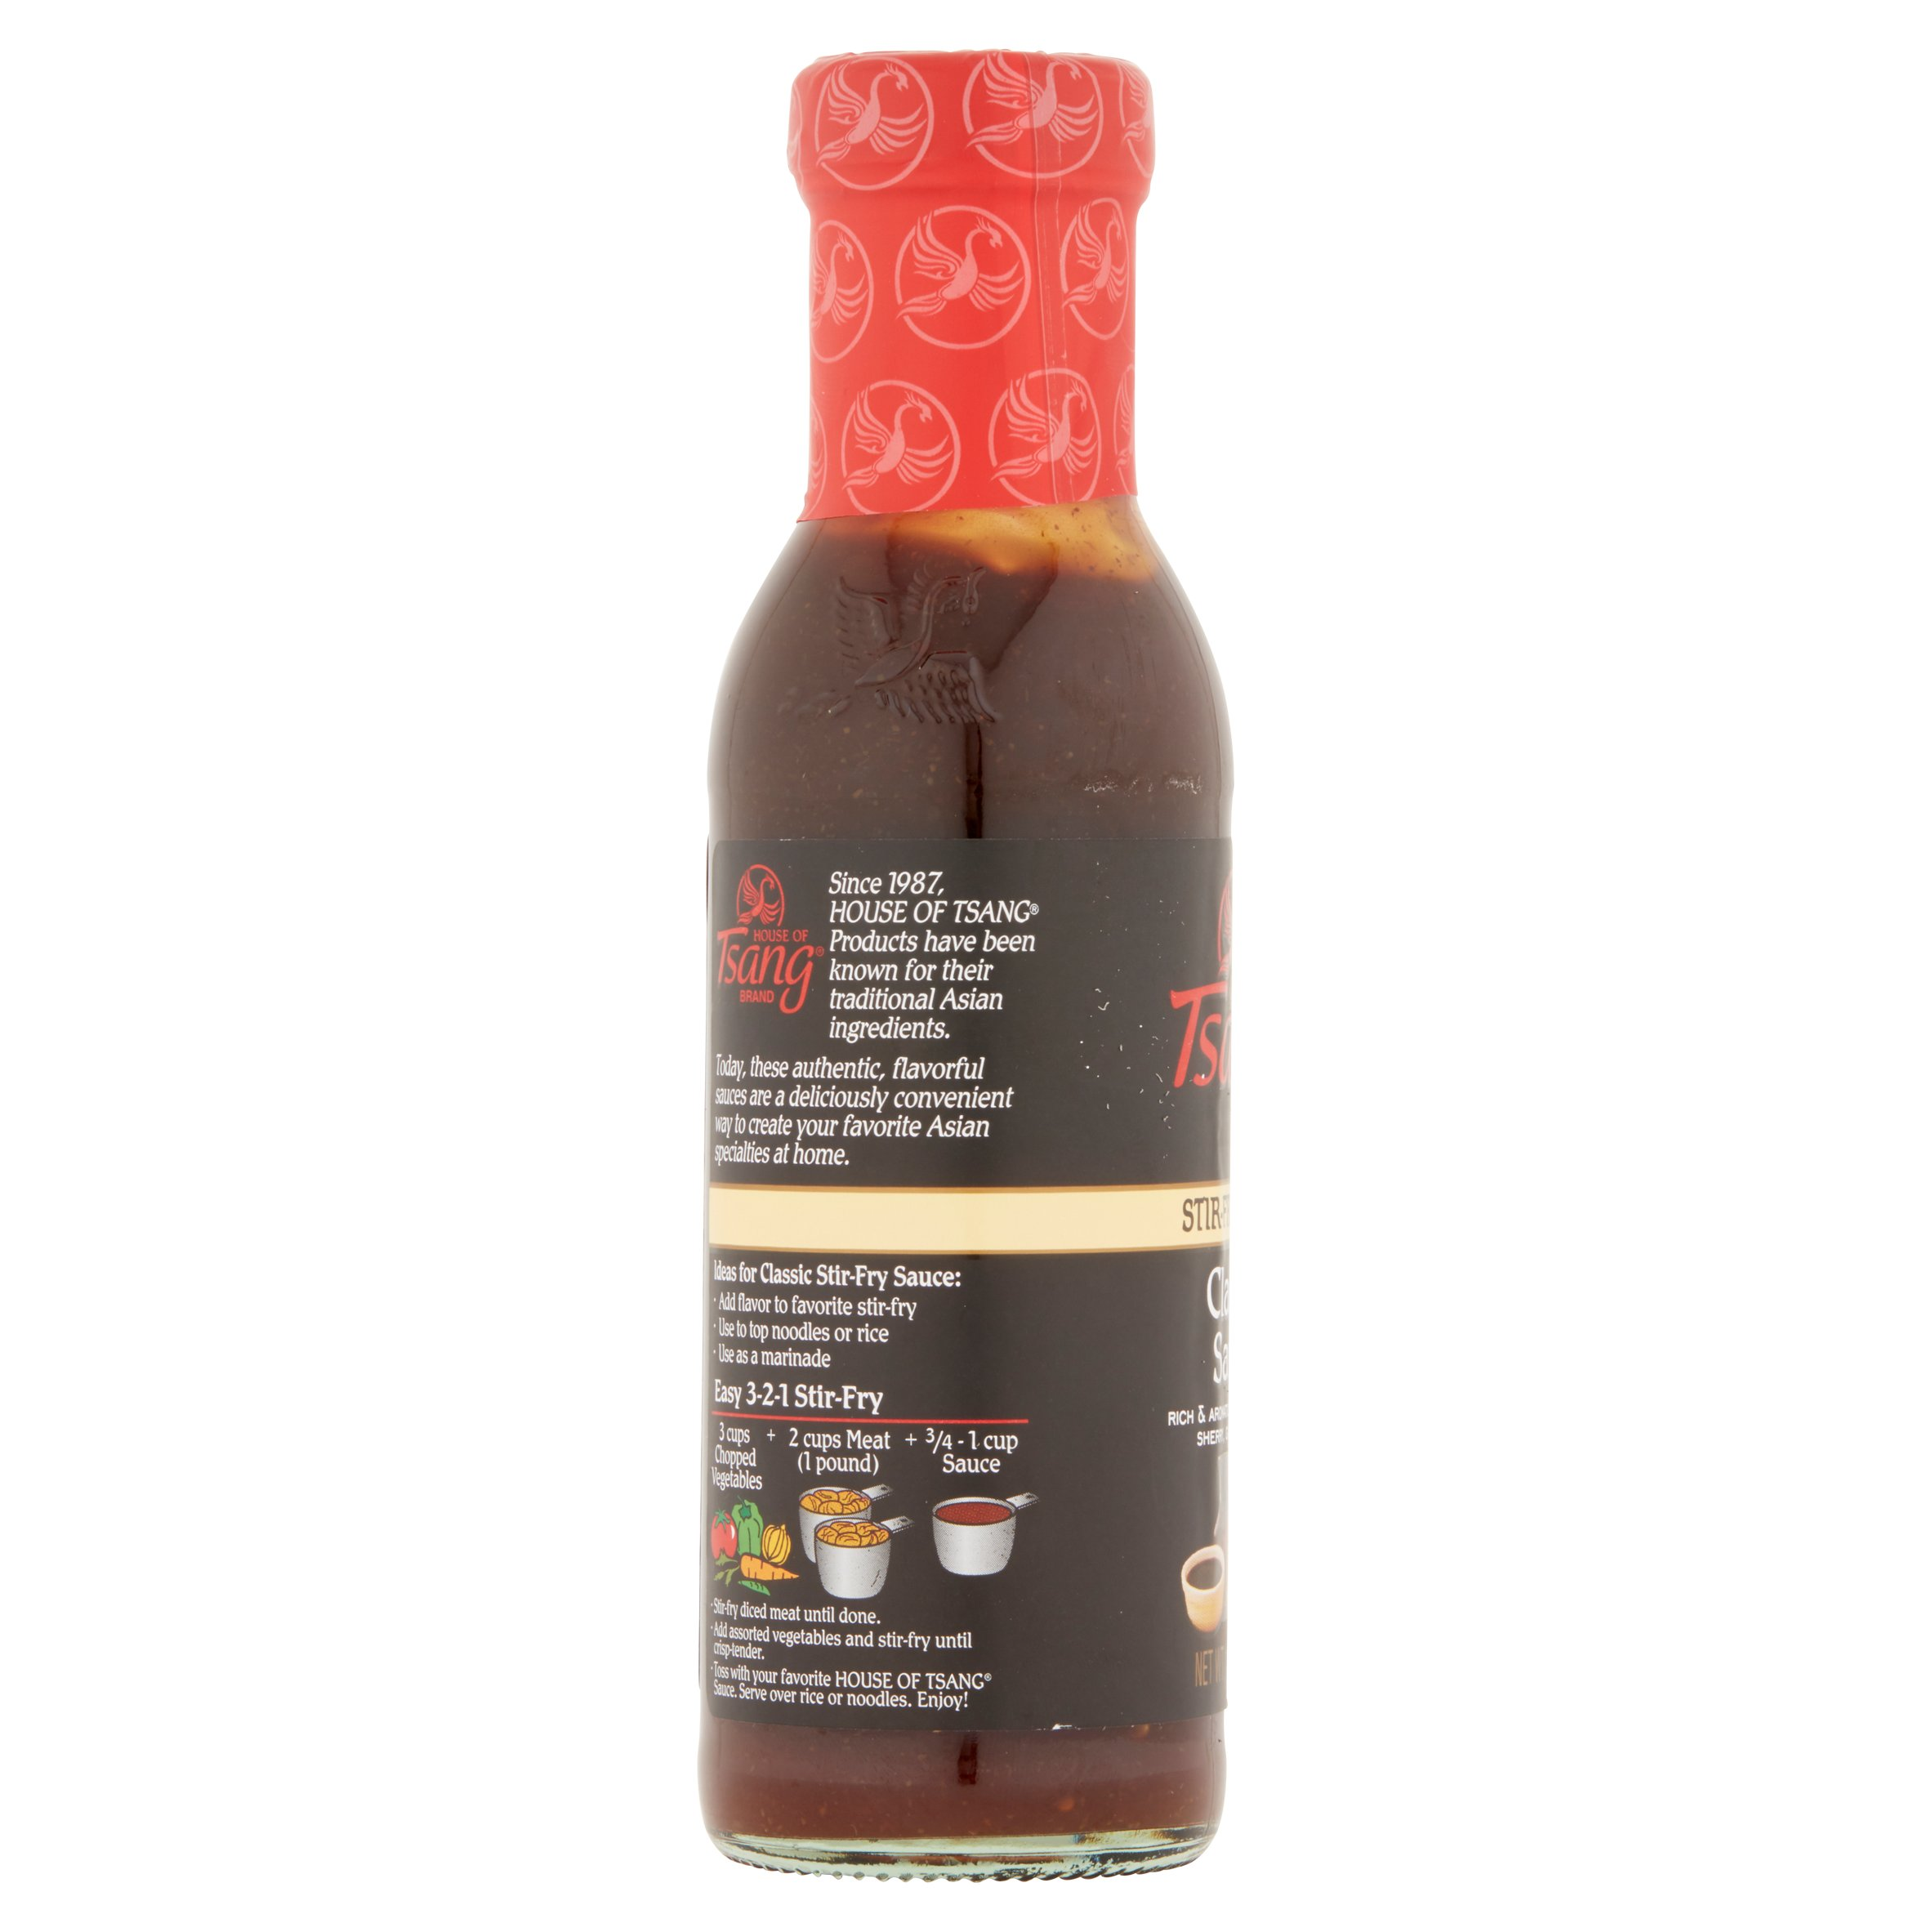 House of Tsang Classic Stir-Fry Sauce 11.5 oz. Bottle - Walmart.com